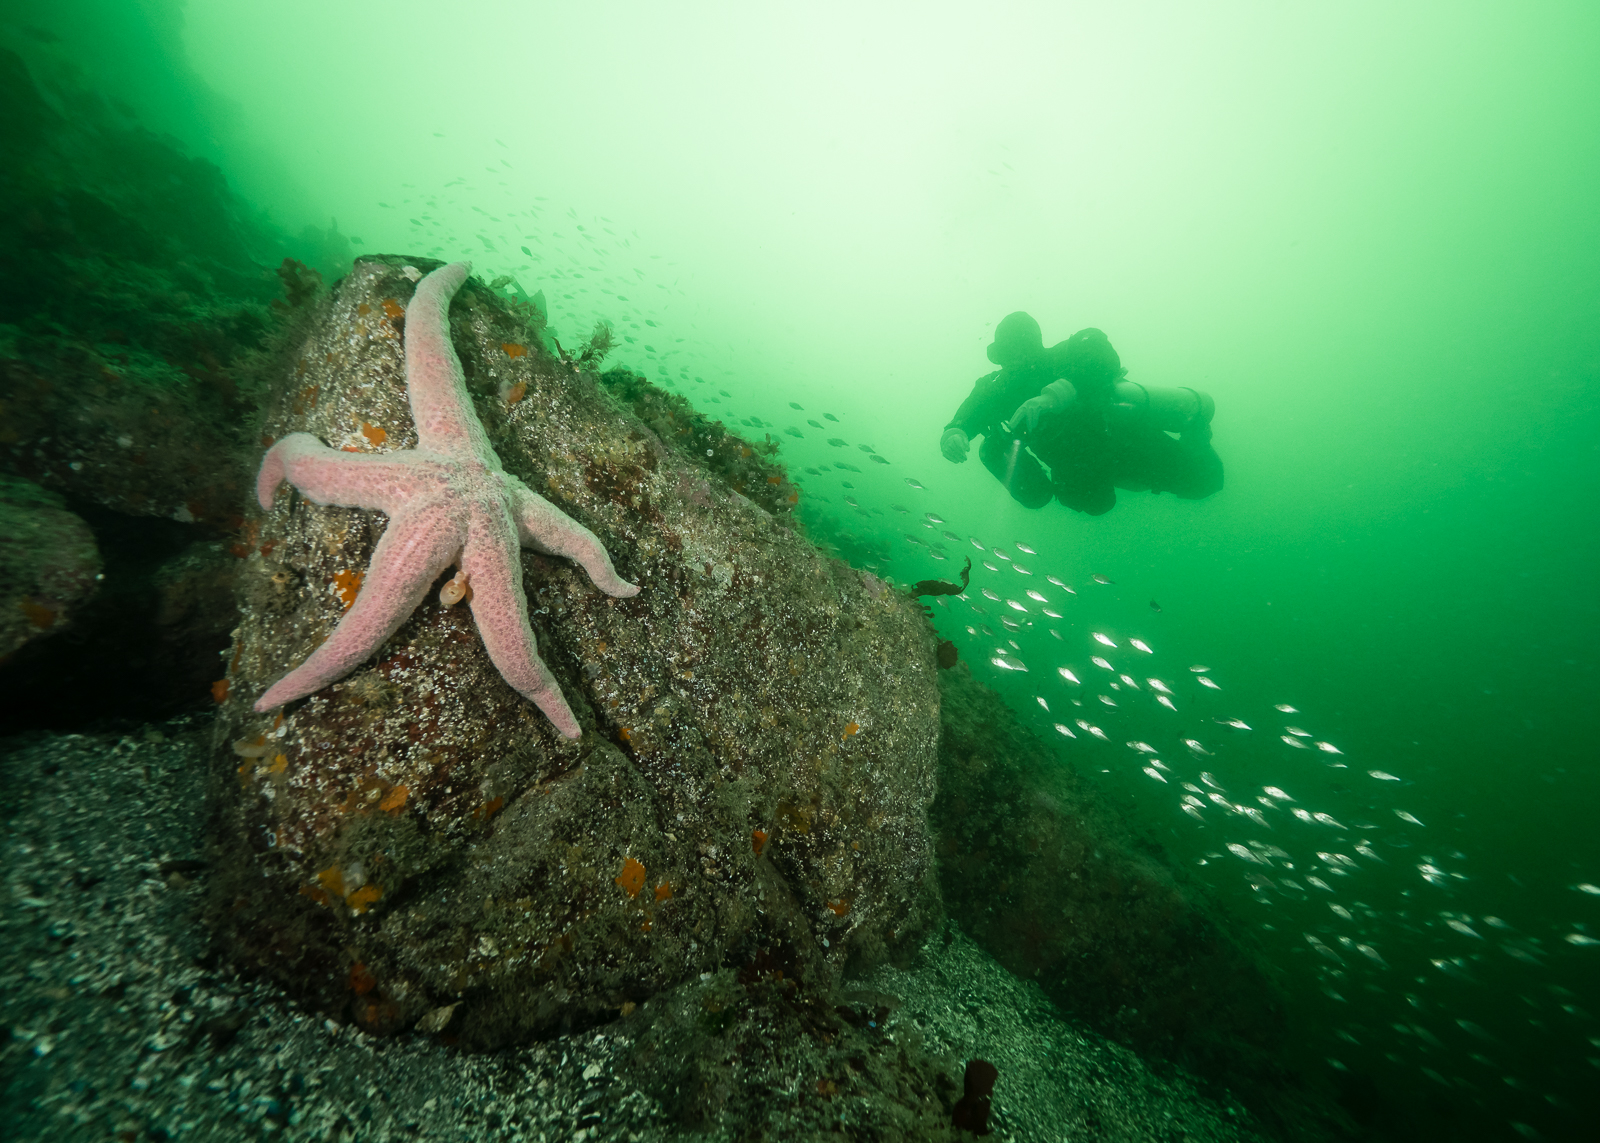 A spiny pink star (Pisaster brevispinus) is perched on a boulder while a school of juvenile fish is lit up by a diver. Sea stars have been making a comeback after several years of a wasting disease decimating populations. Fortunately, spiny pink stars were less affected.